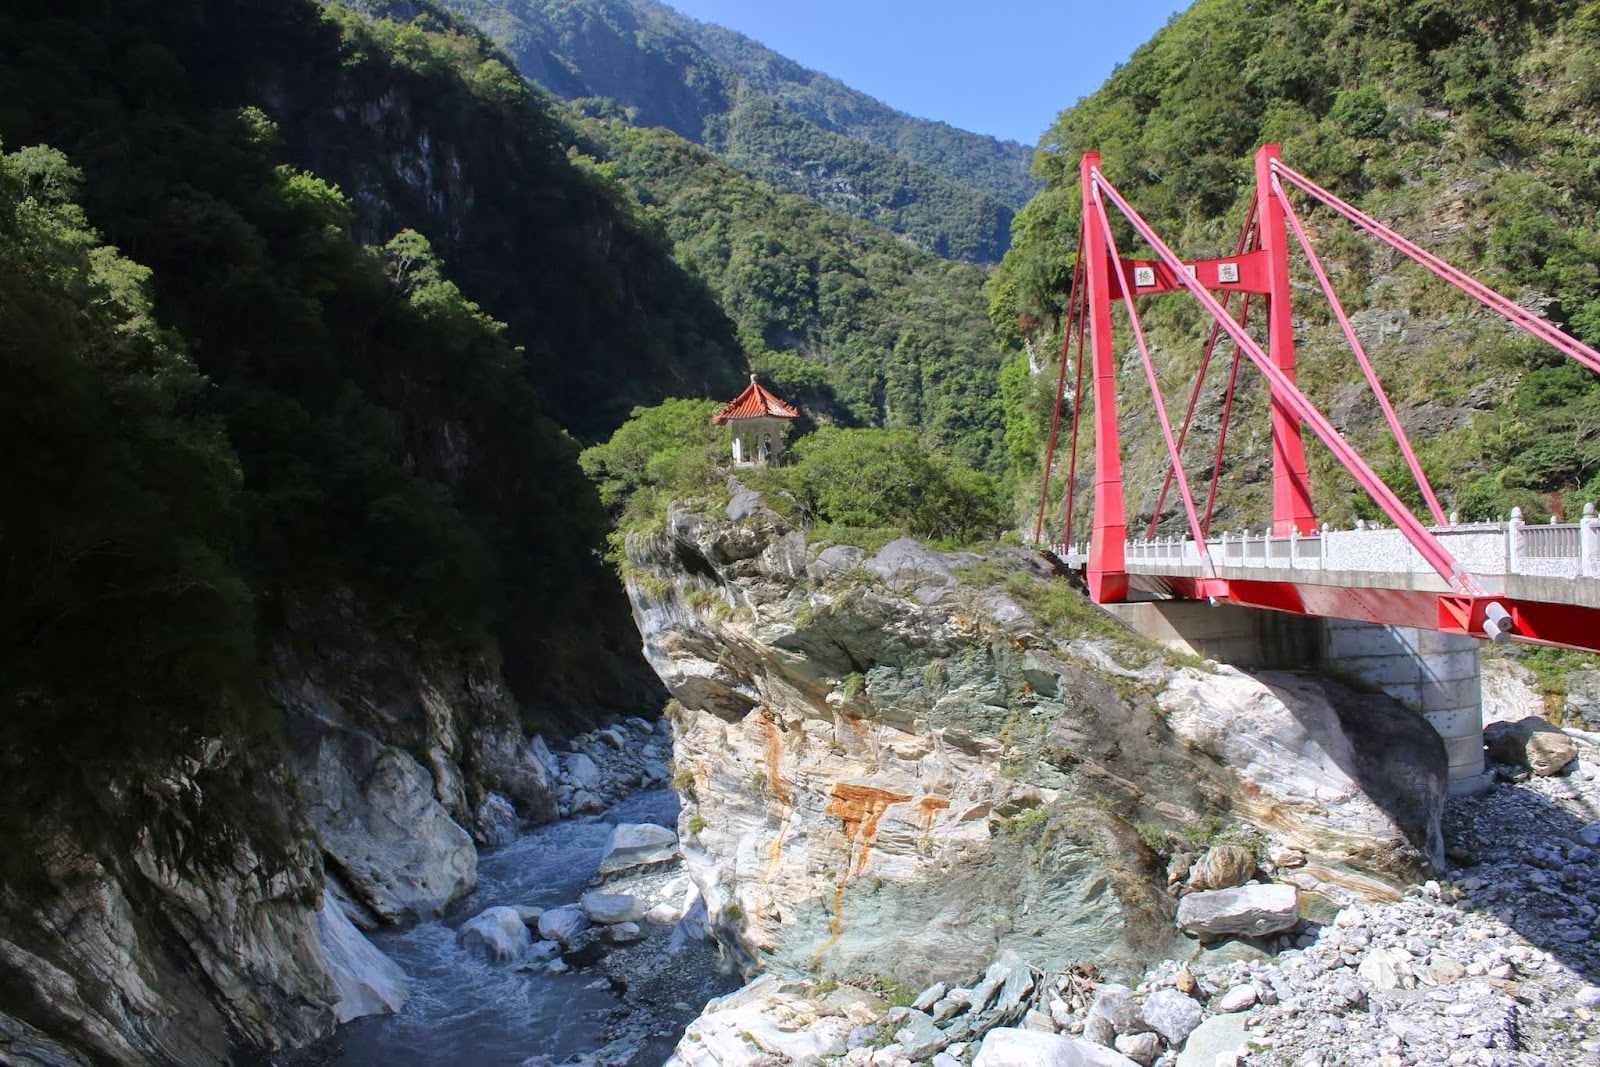 A pavilion was built on this frog rock to resemble a crown on the frog's head at Cimu Bridge at Taroko Gorge National Park in Hualien, Taiwan